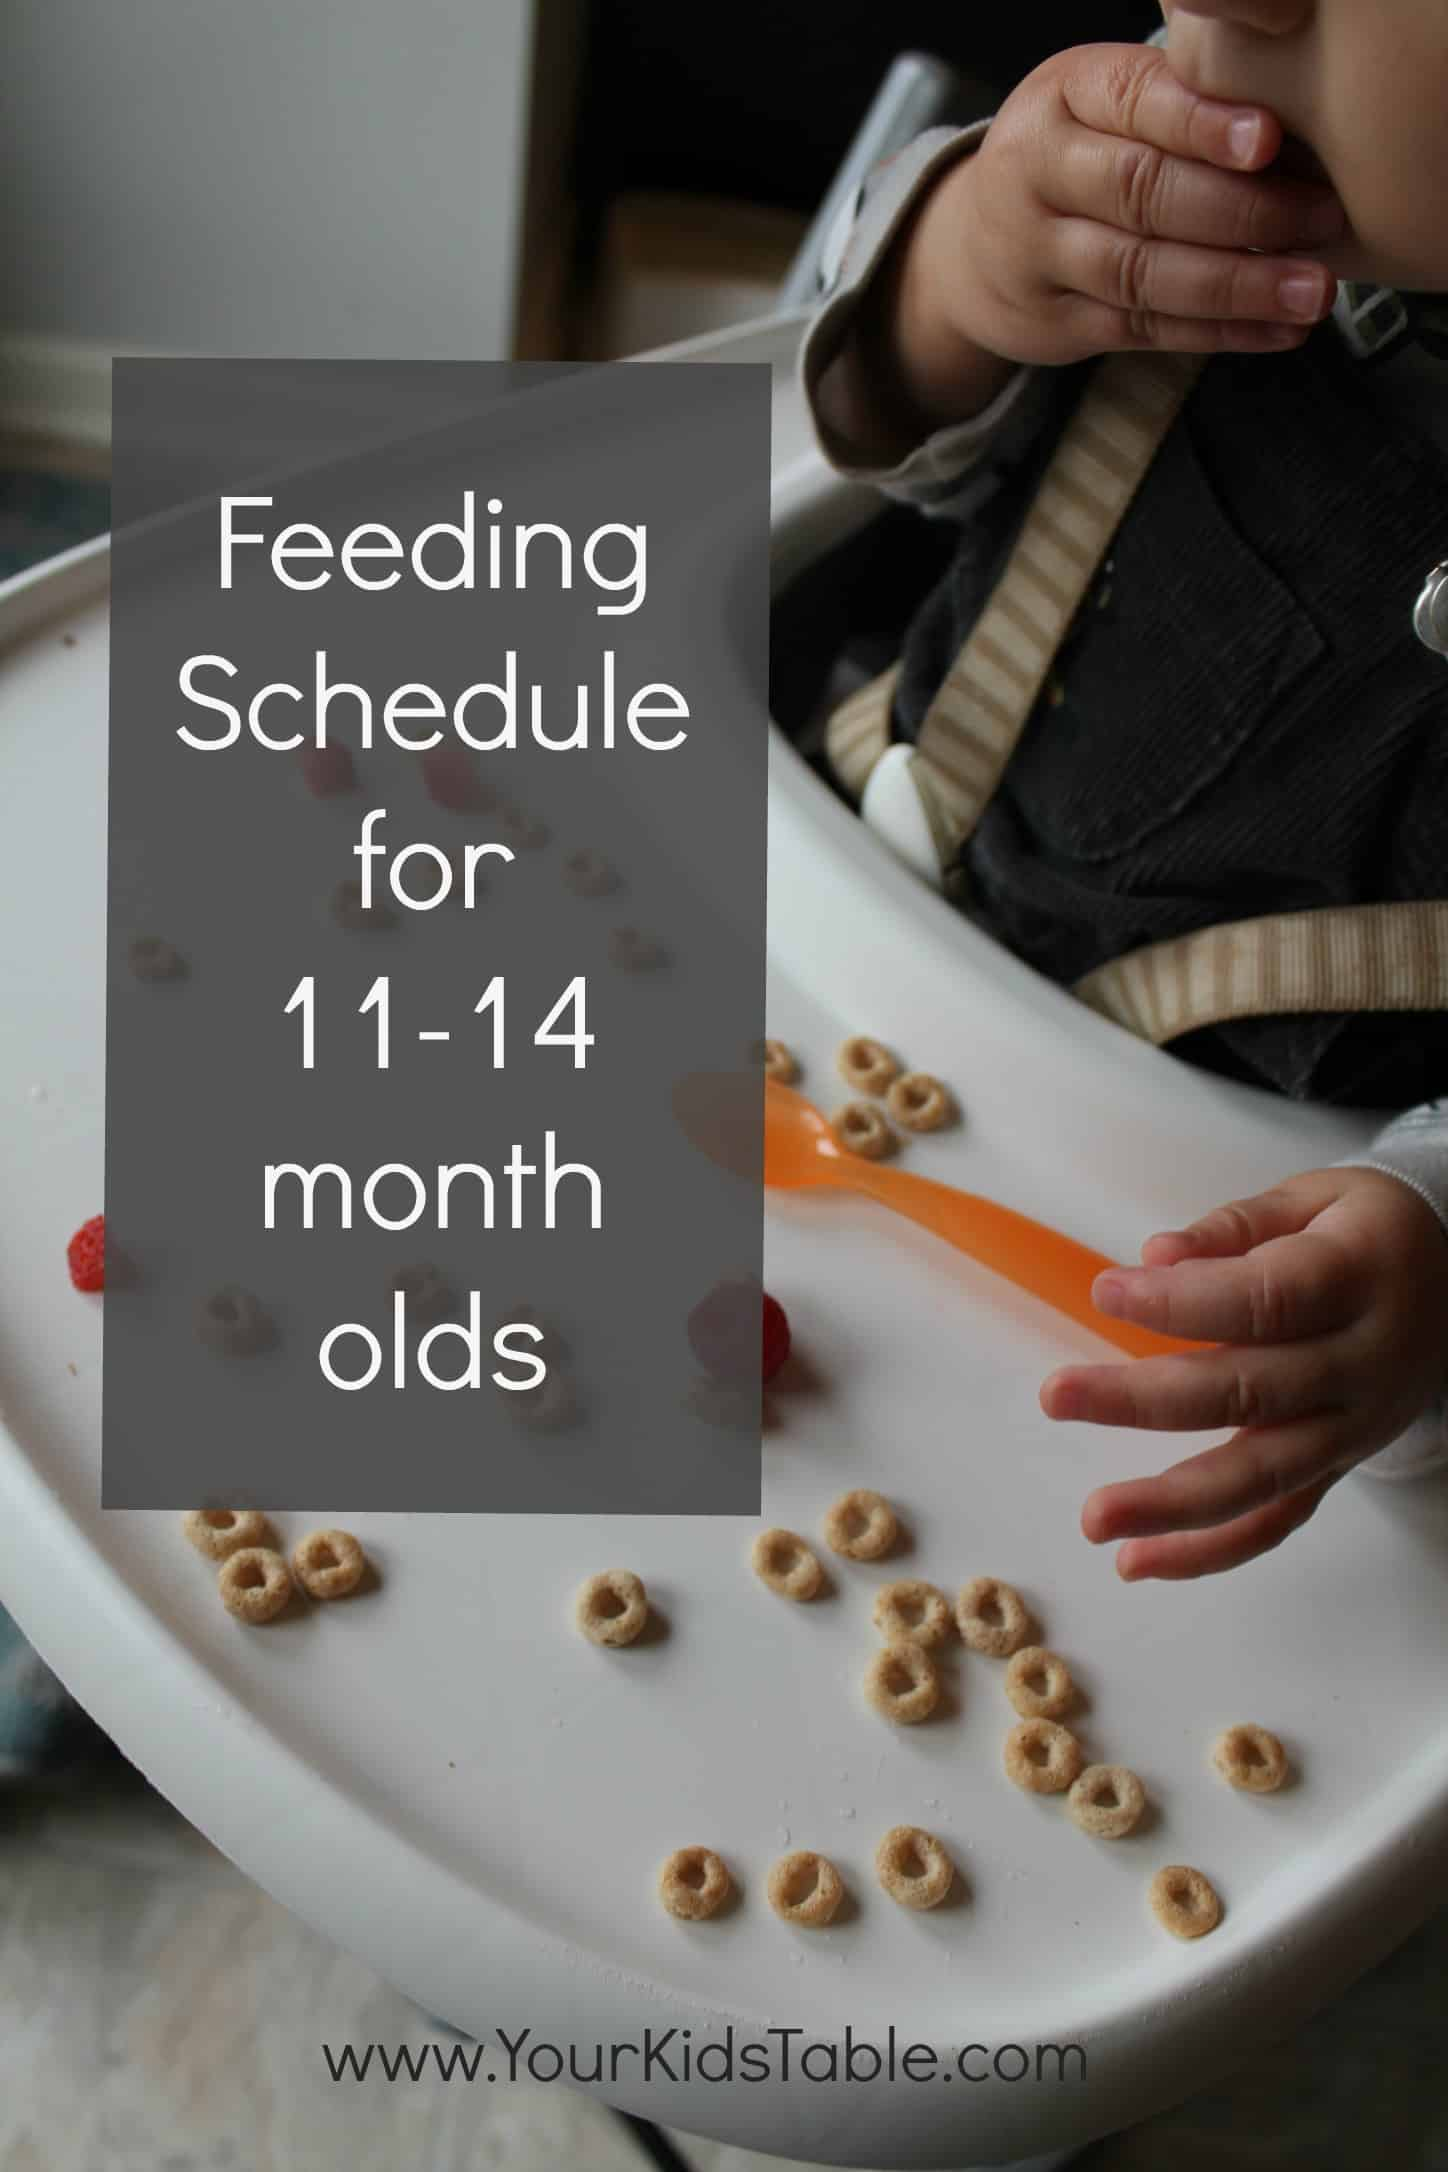 Feeding Schedule for 11, 12, and 13 month olds - Your Kid's Table